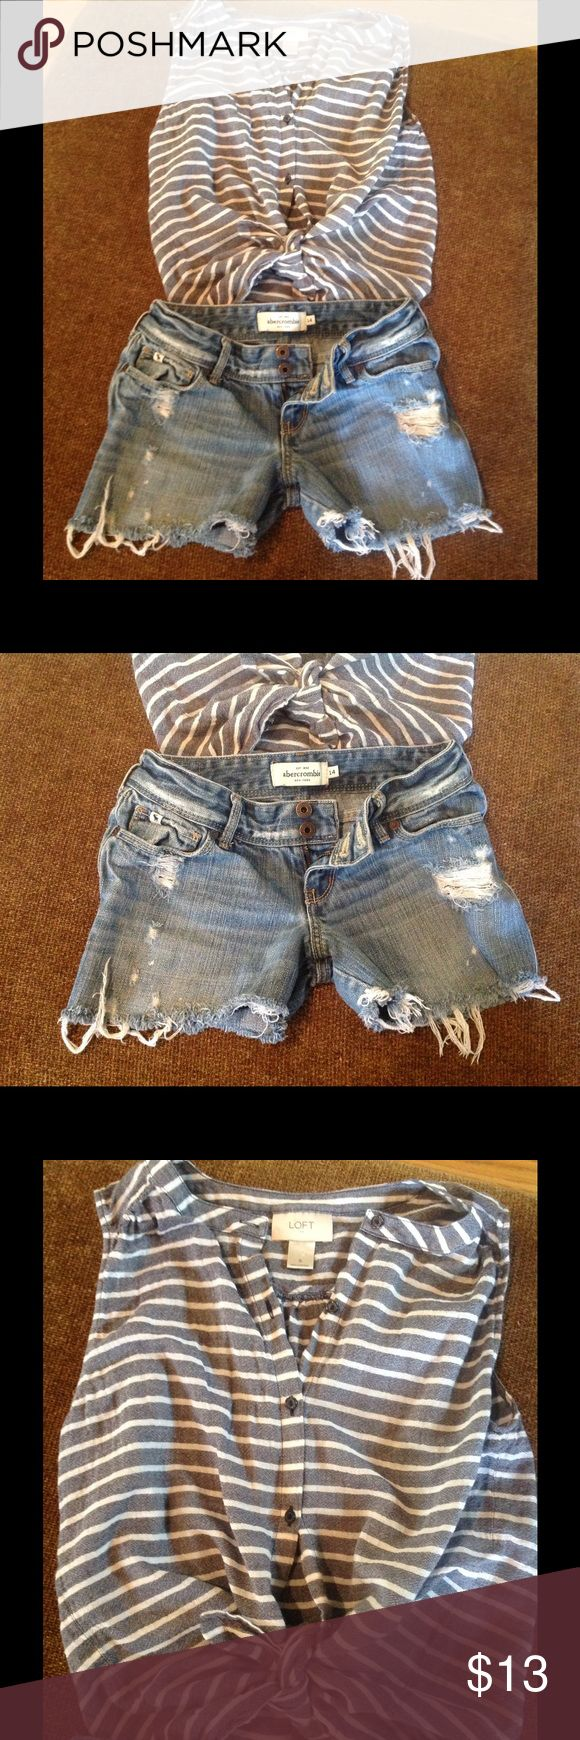 Girls Abercrombie shorts sz 14, Loft top Girls Abercrombie sz 14 cut off, distressed Denim shorts, LOFT top size small.  Cute outfit together!  No stains noted Smoke fee home, fast shipping noted! Abercrombie & Fitch Bottoms Jeans